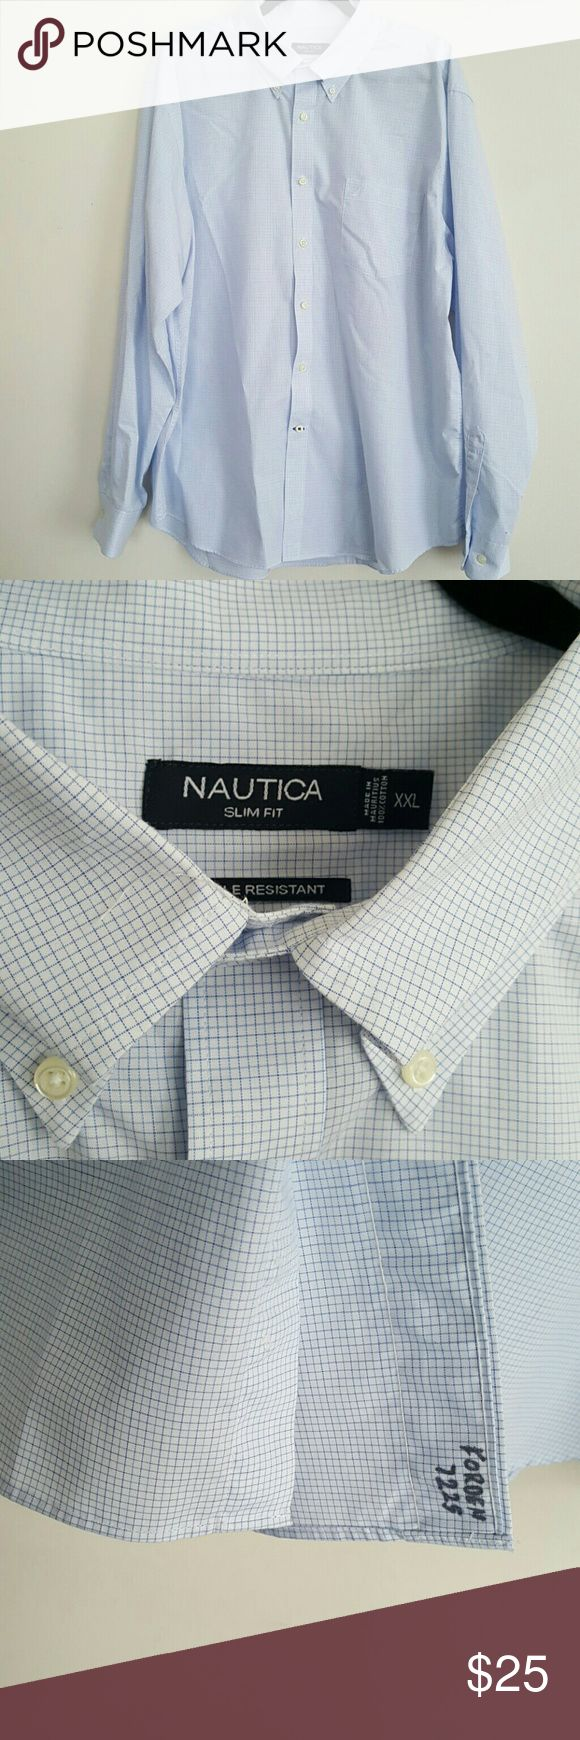 "Nautica Blue Checkered Shirt SKY/ LIGHT Blue Checkered with signature ship on chest pocket  Slim XXL Wrinkle Resistance   Measurements Appox. Laying flat  Armpit to Armpit 25""  Front top to bottom 29""  Back top to bottom 33""  Shoulder to end of cuff 26""  Neck 7"" Across  Only flaw is name written small on inside flap (see photo) Nautica Shirts Casual Button Down Shirts"